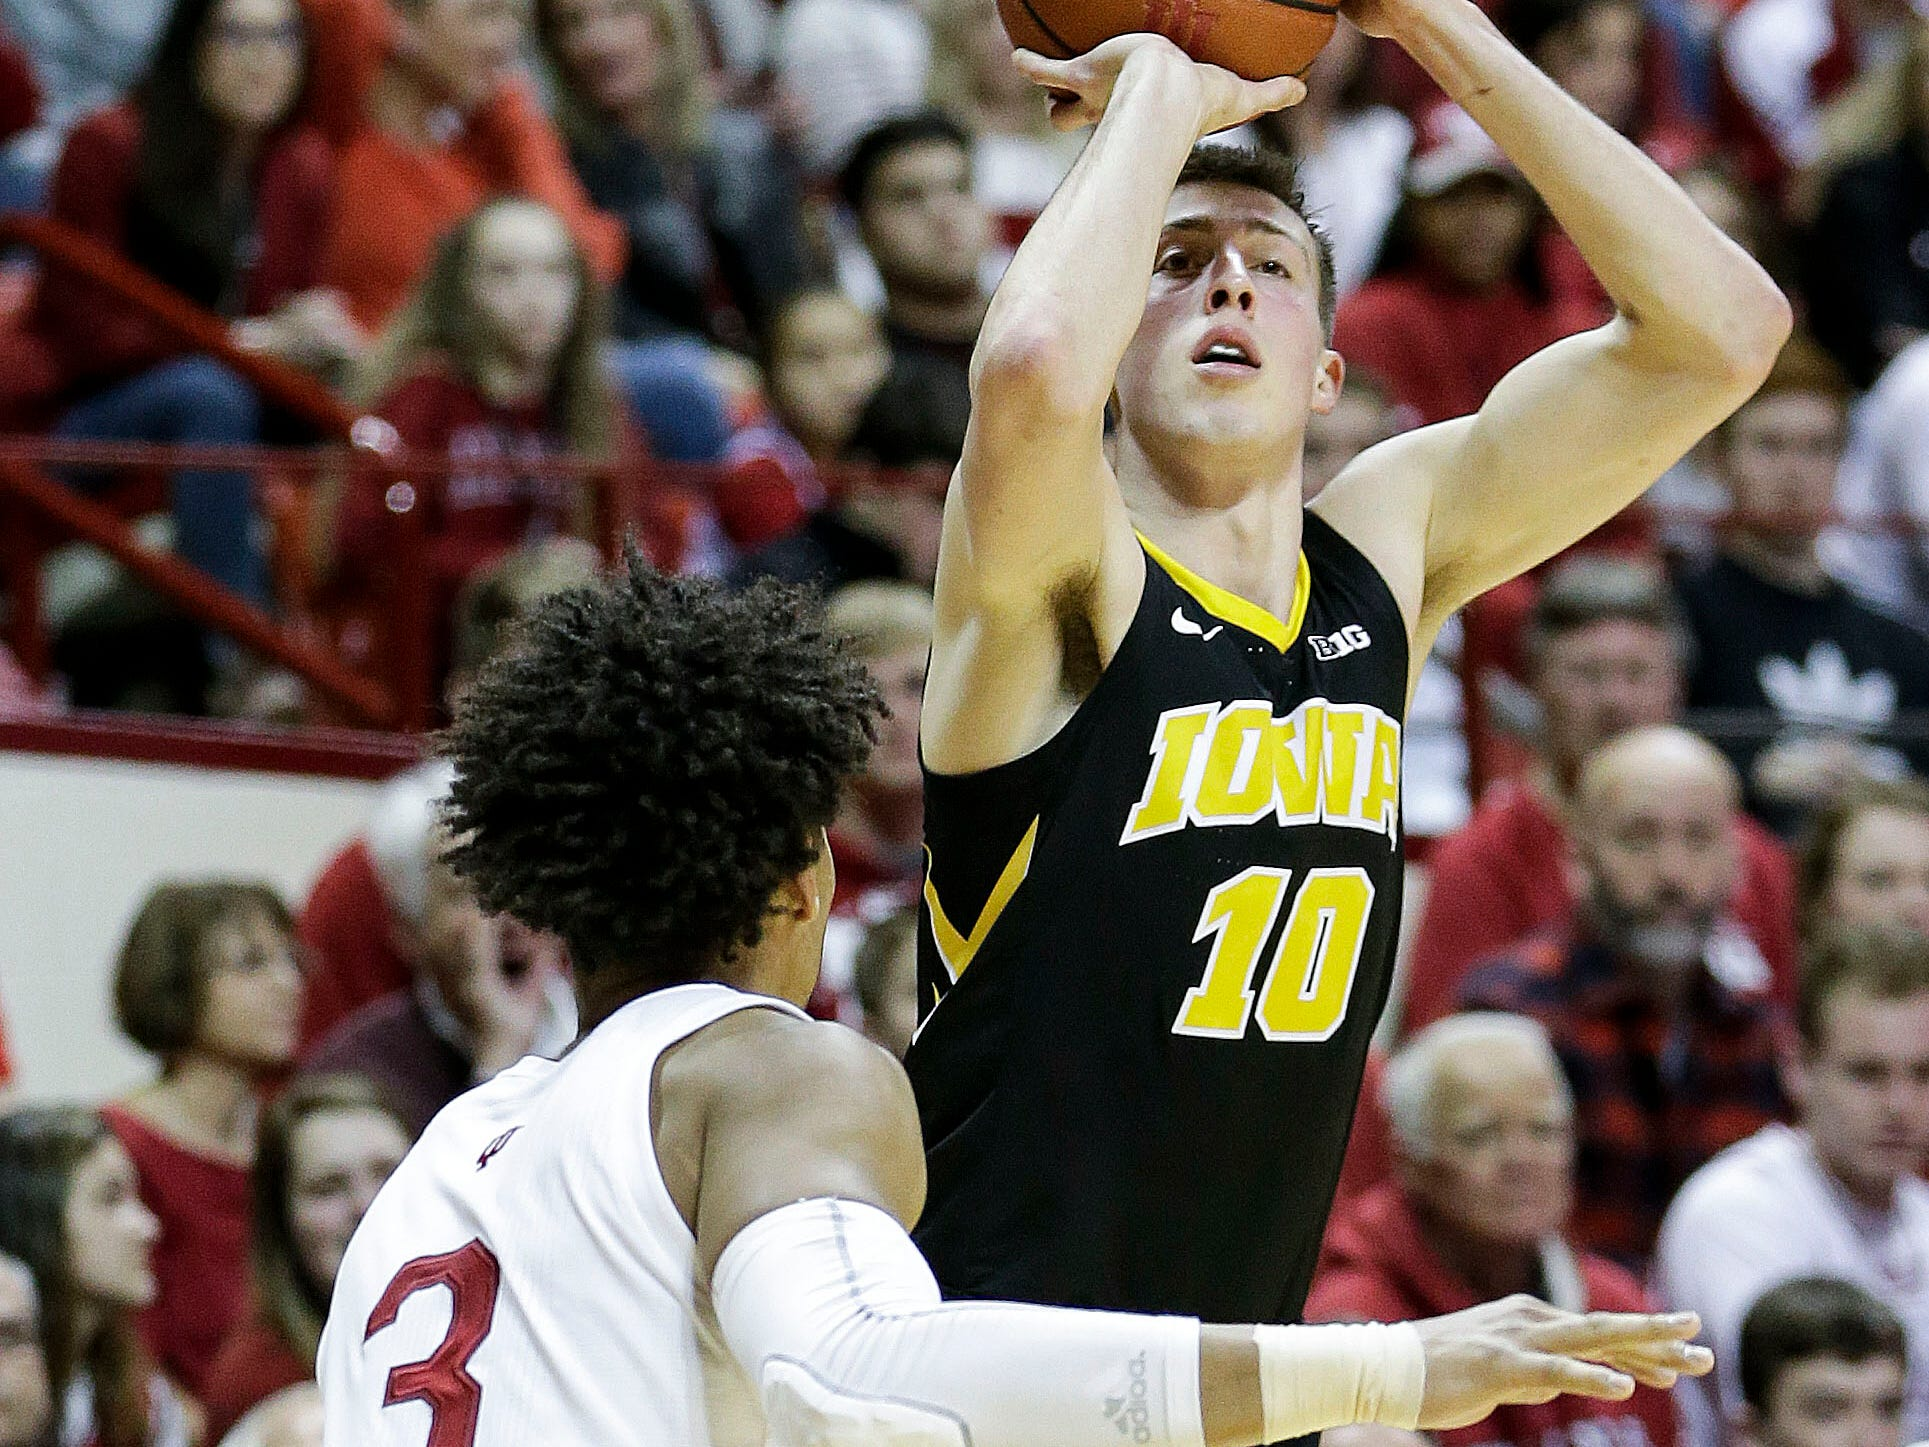 Iowa forward Joe Wieskamp rises up for one of his four first-half 3-pointers Thursday, this one over Indiana's Justin Smith.